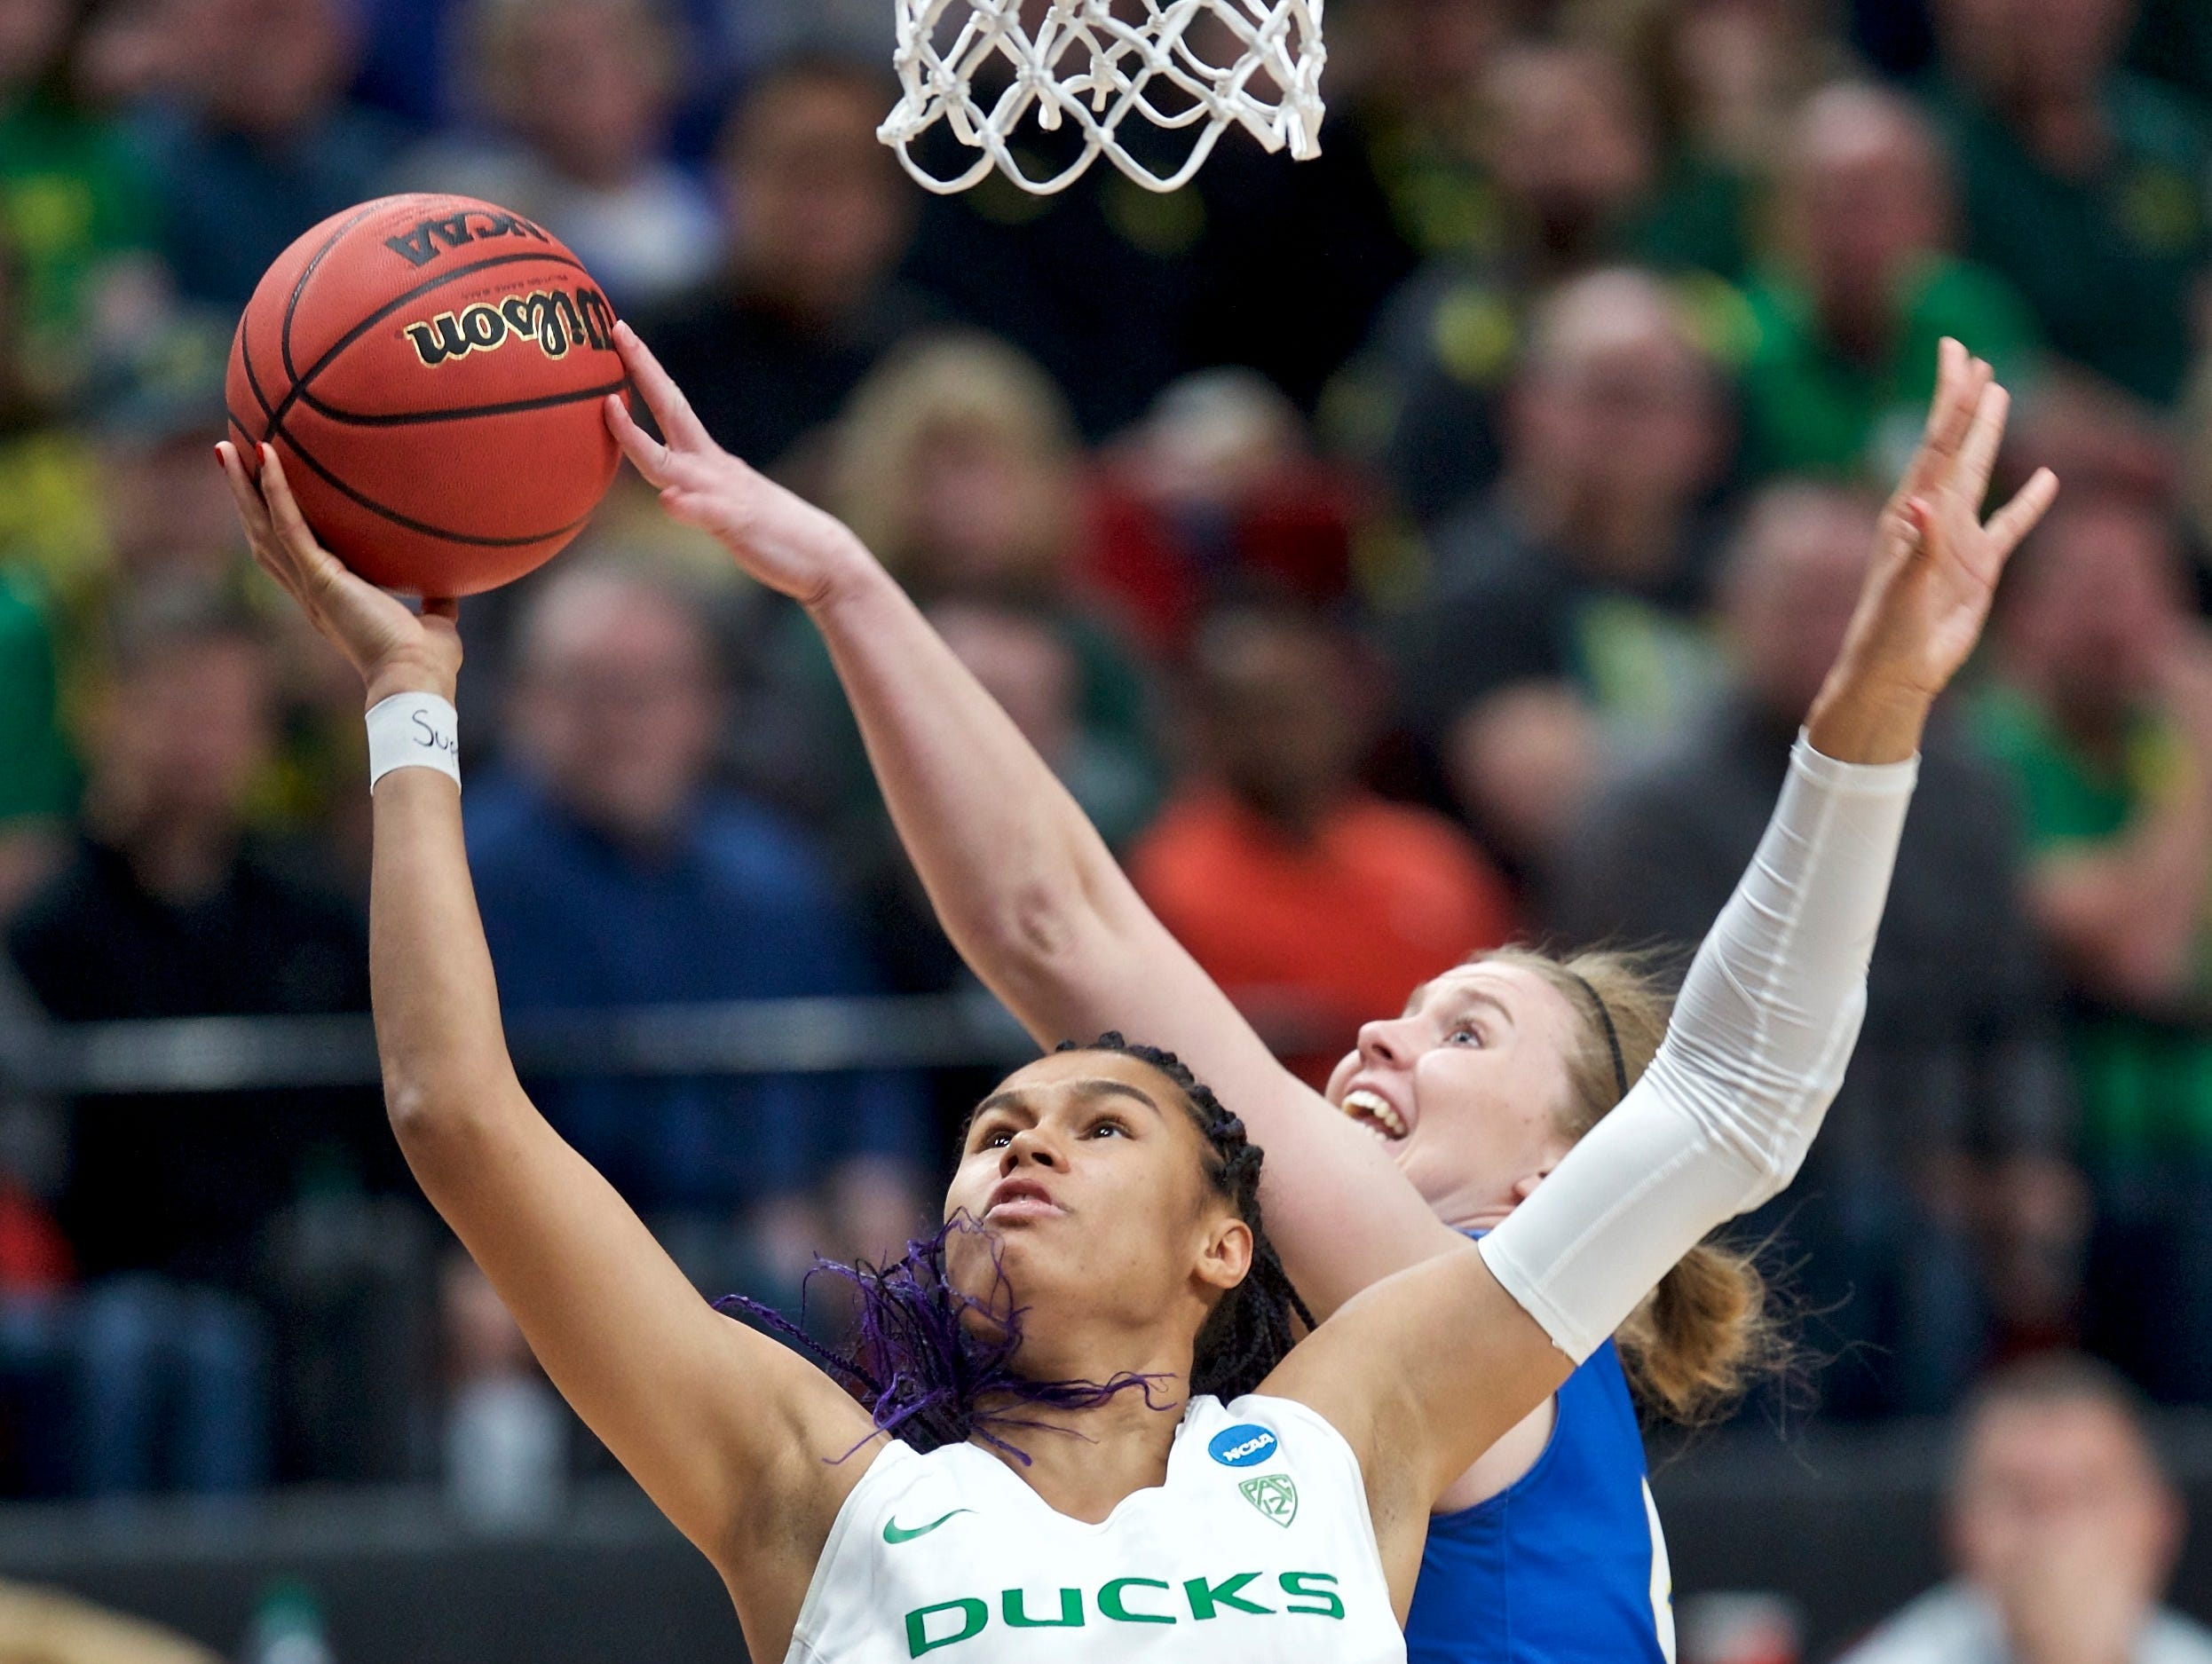 Oregon forward Satou Sabally, left, has a shot blocked by South Dakota State forward Myah Selland during the first half of a regional semifinal in the NCAA women's college basketball tournament Friday, March 29, 2019, in Portland, Ore. (AP Photo/Craig Mitchelldyer)